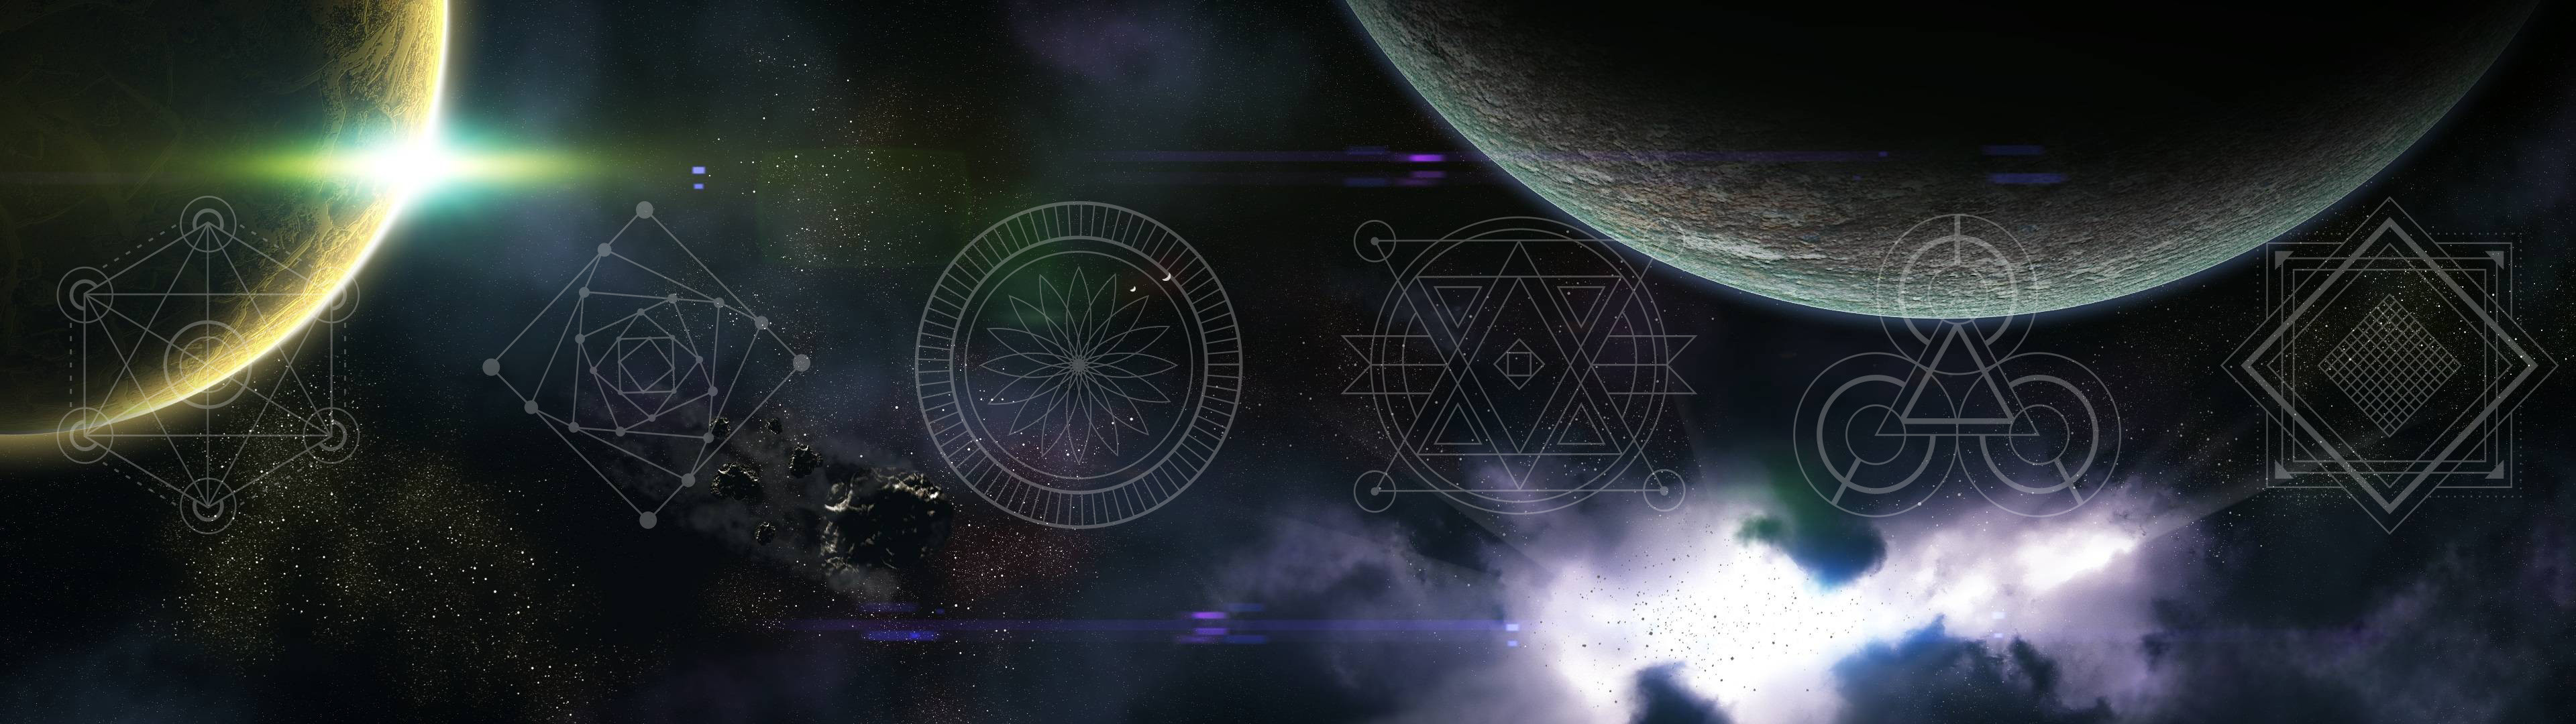 3840x1080 Sacred geometry and space wallpapers (part1)